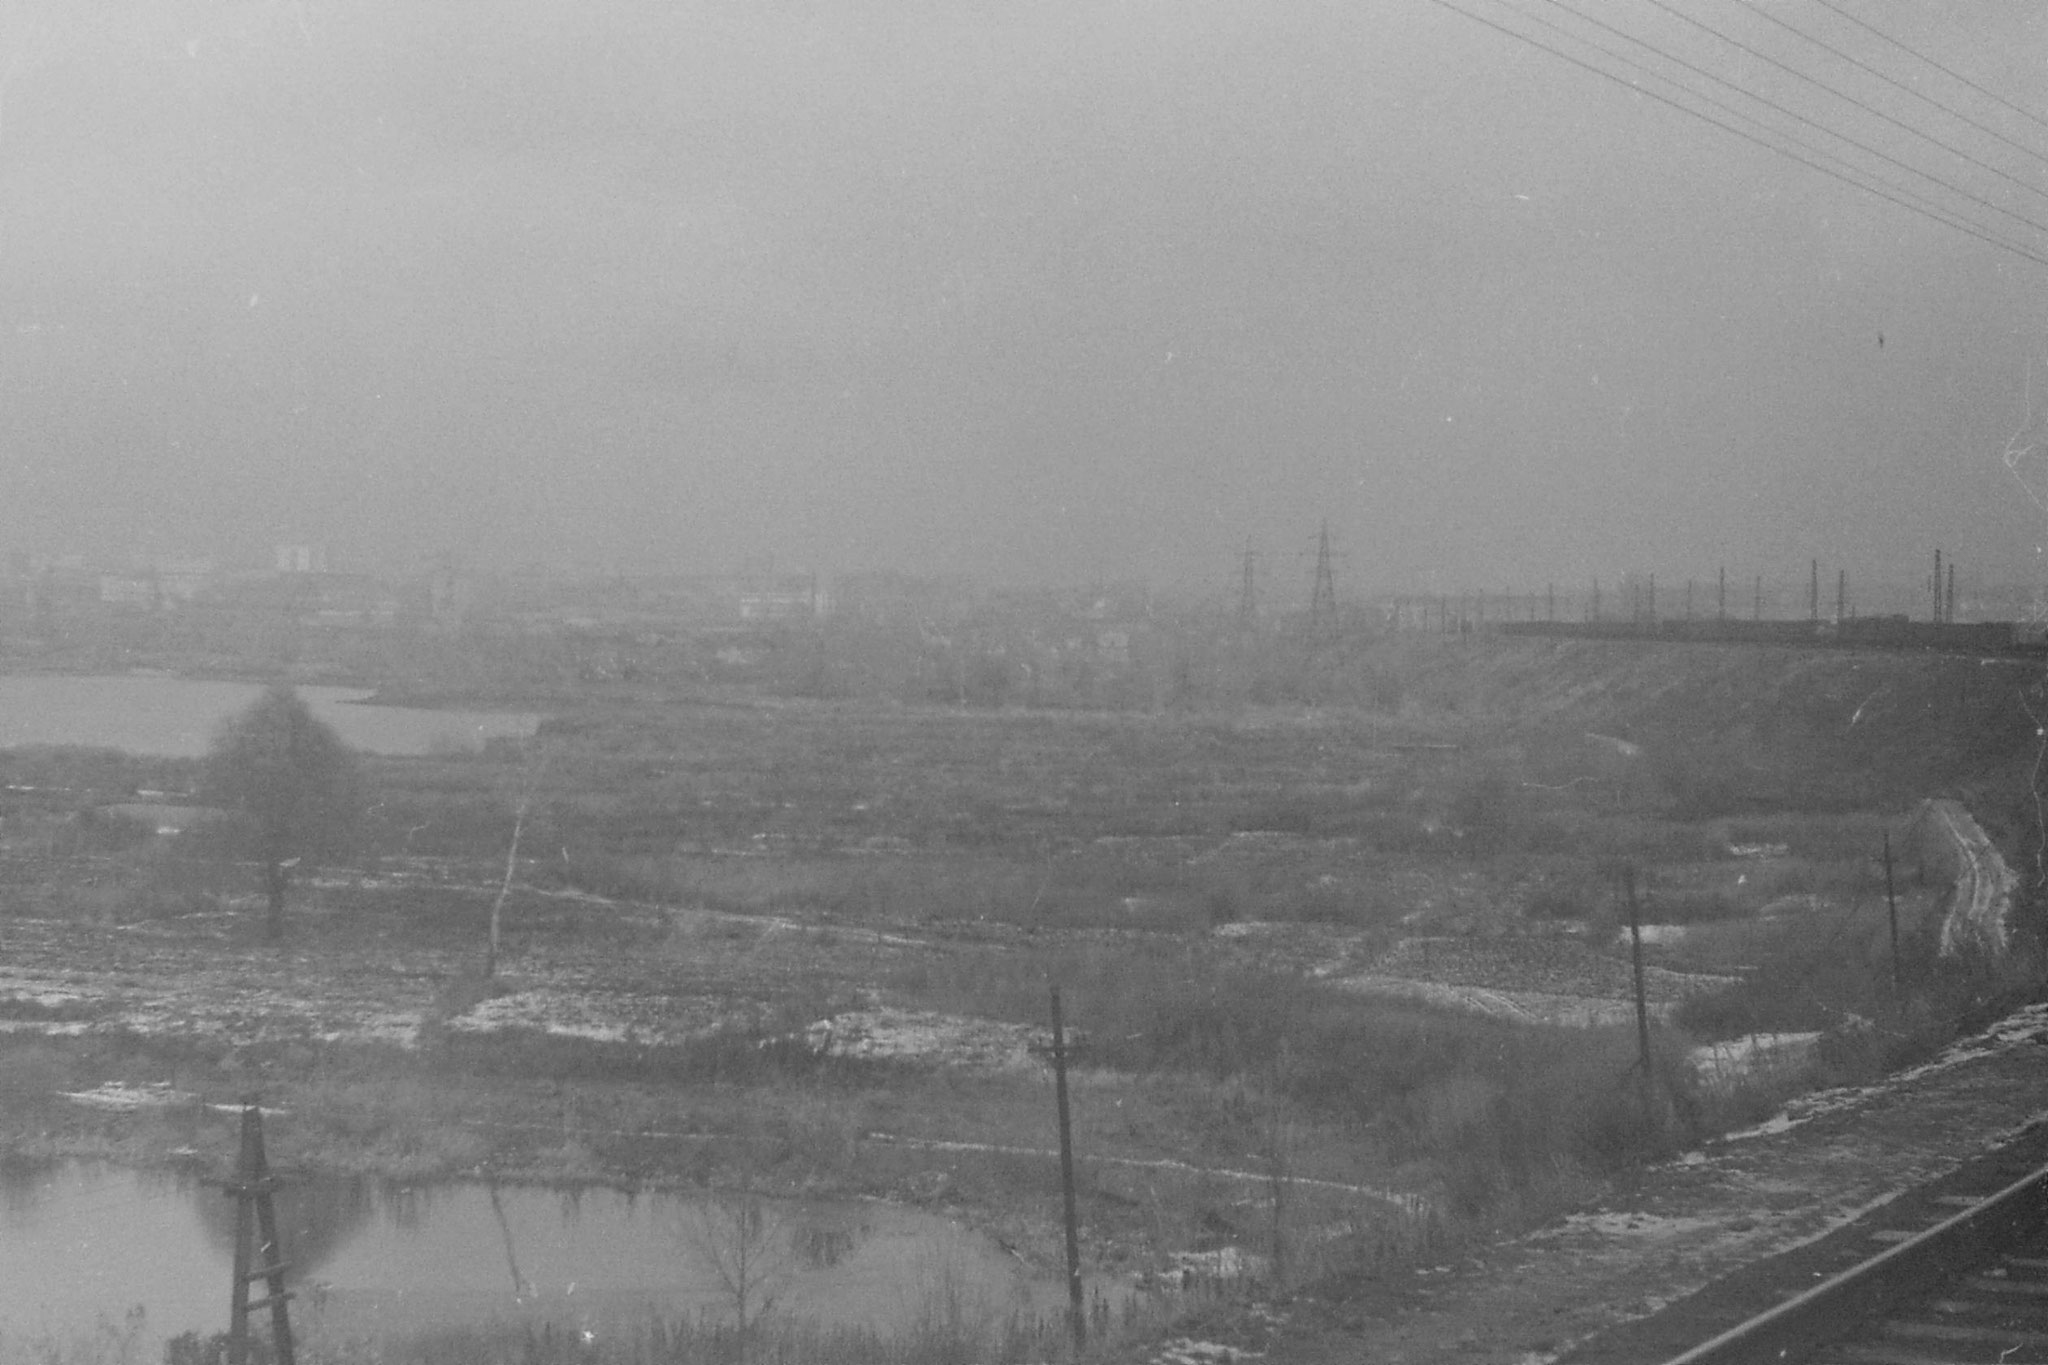 20/10/1988: 2: outside Novosibirsk